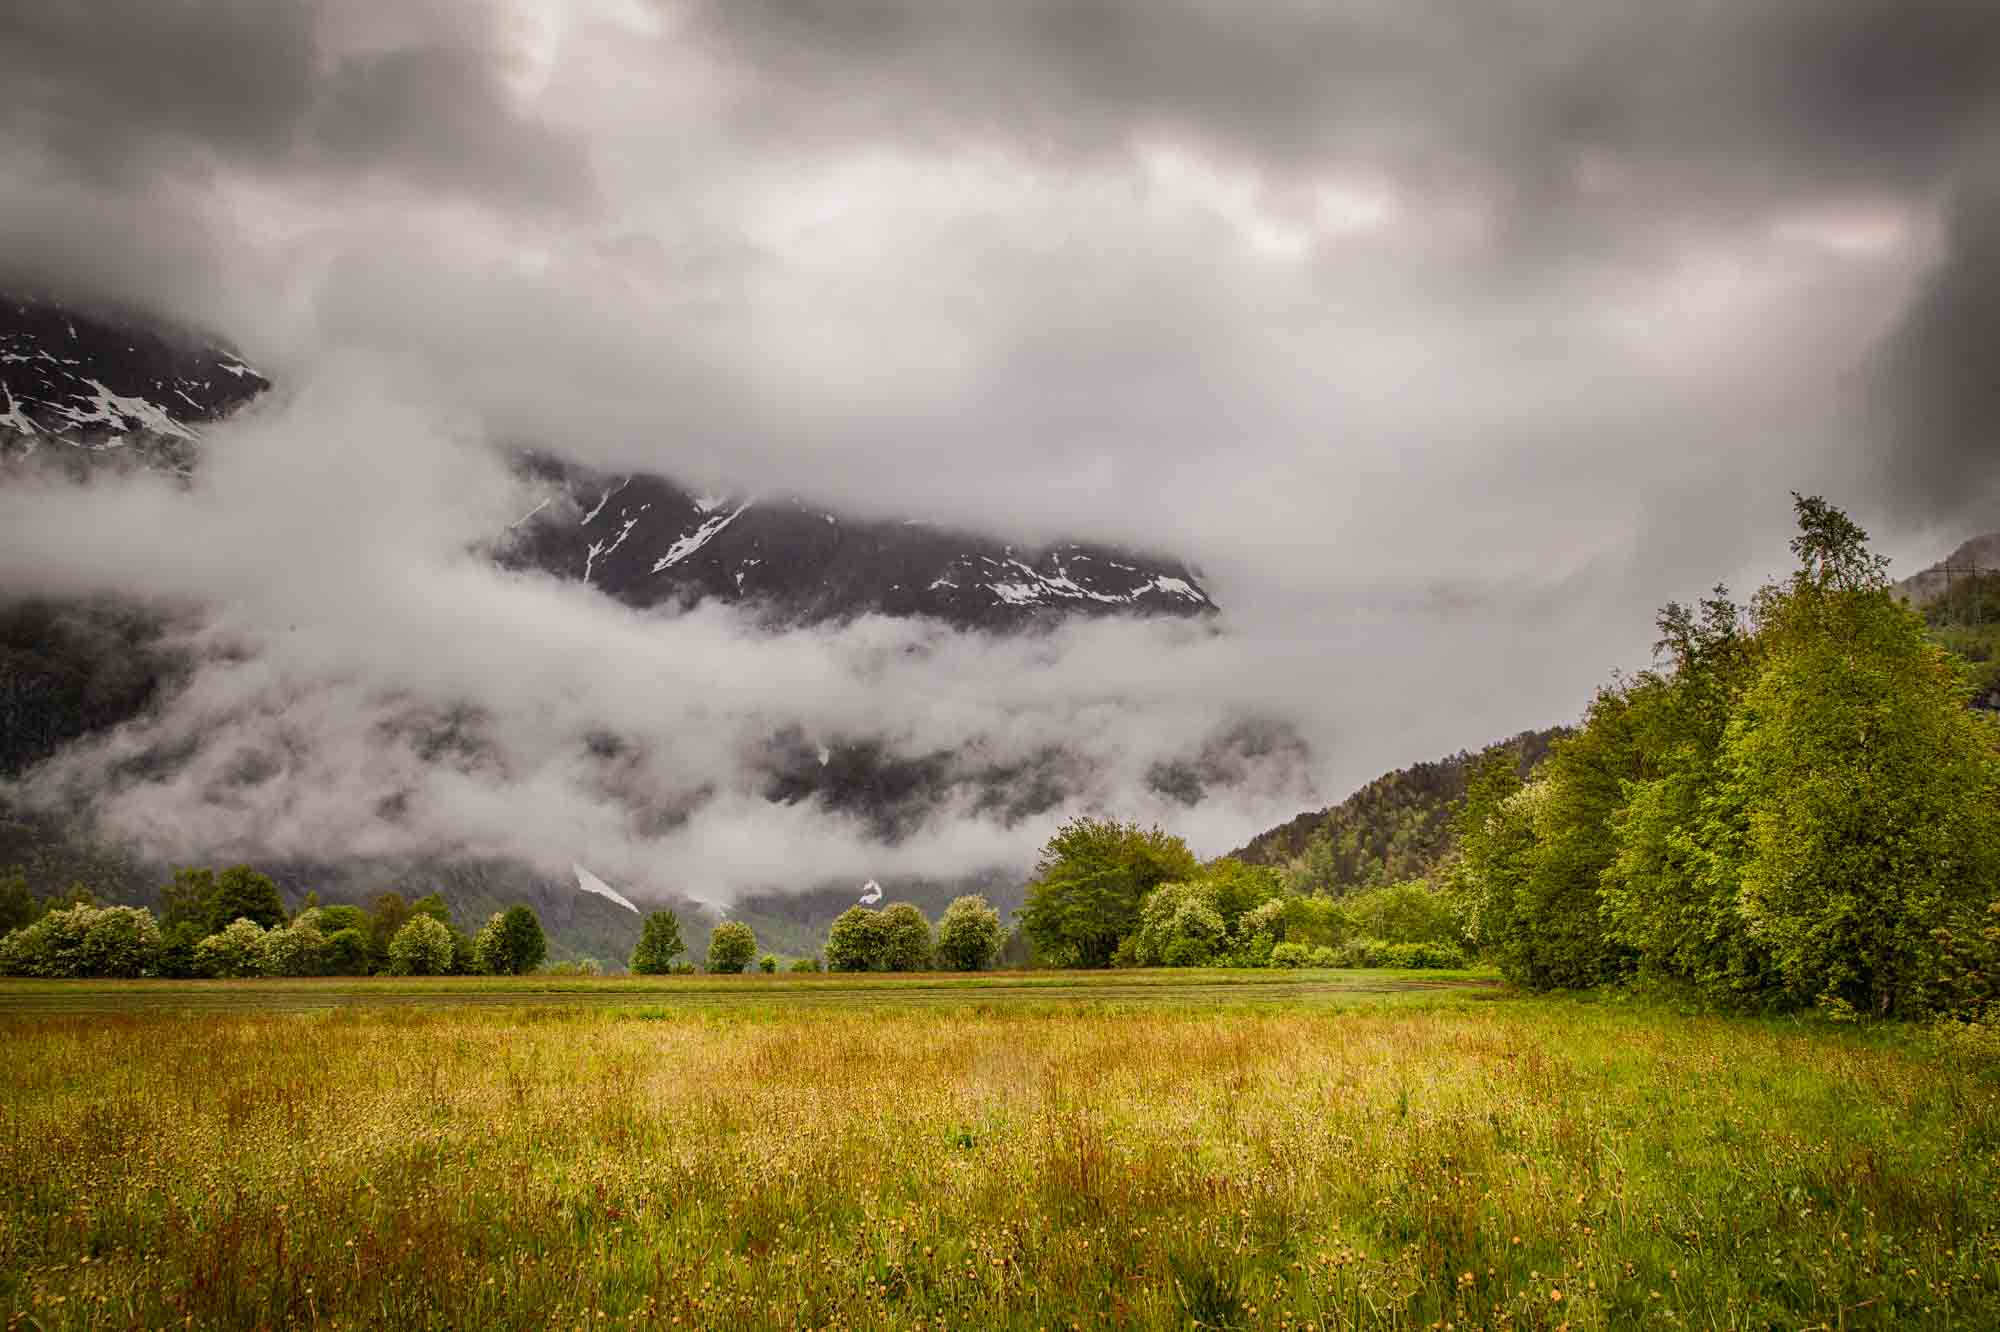 Bad weather can be great weather for photography. Photo: John Einar Sandvand